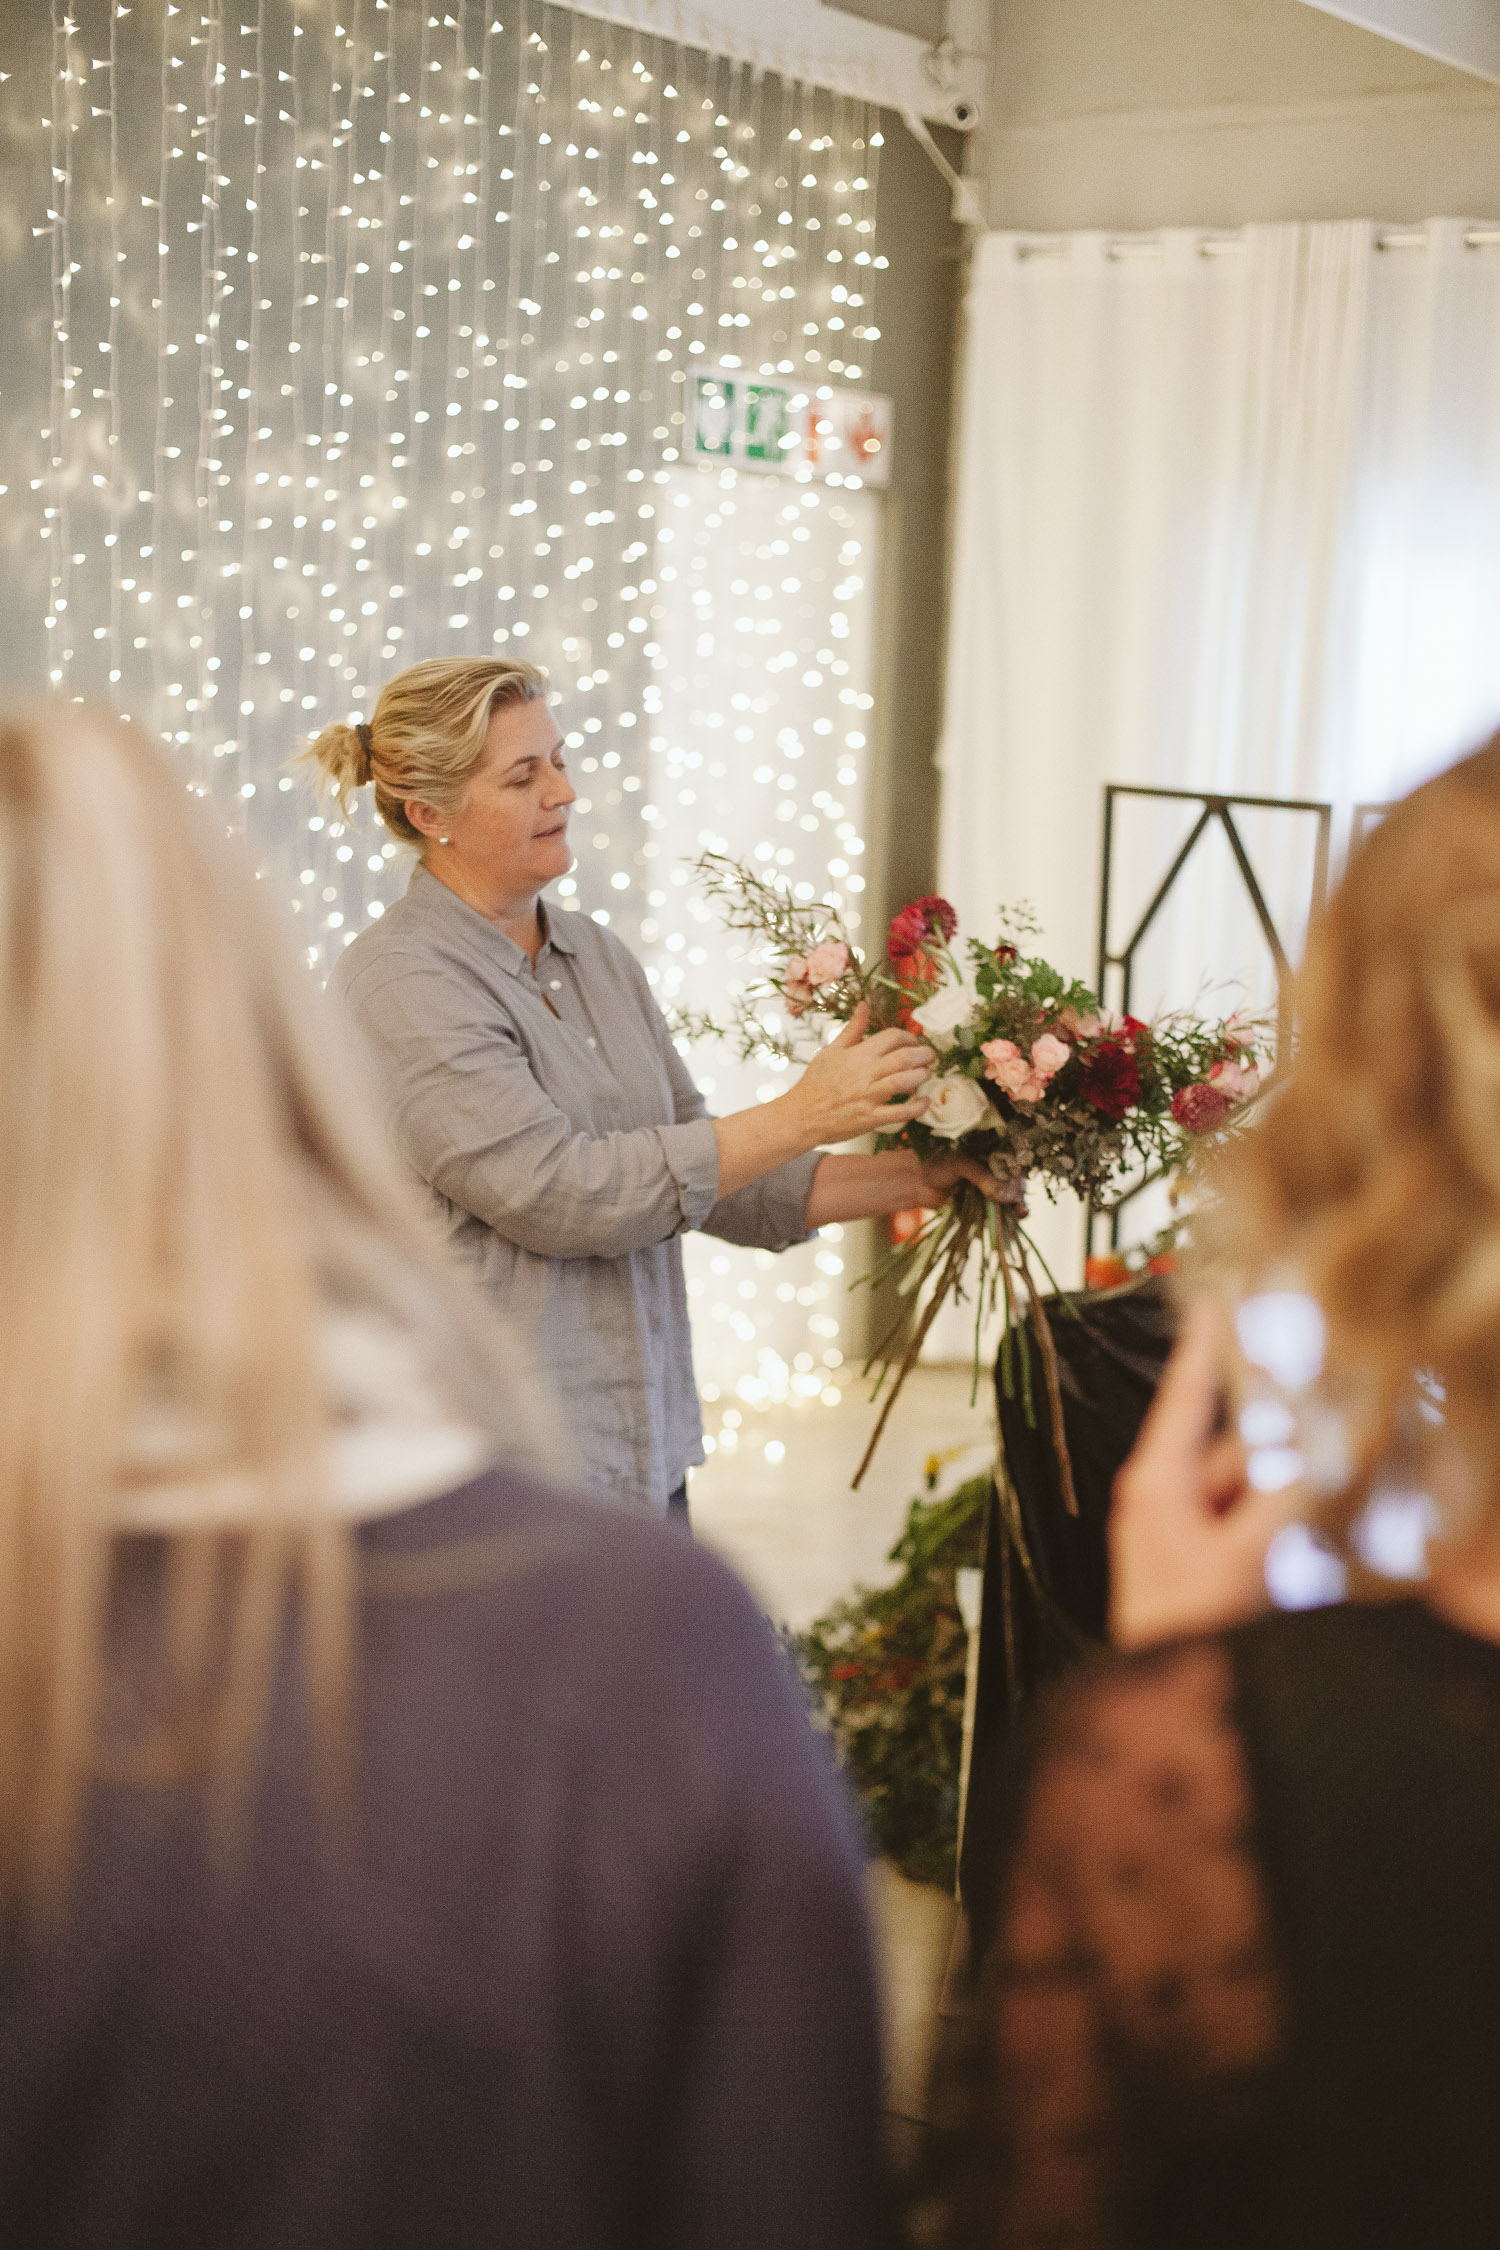 KZN floral design workshop